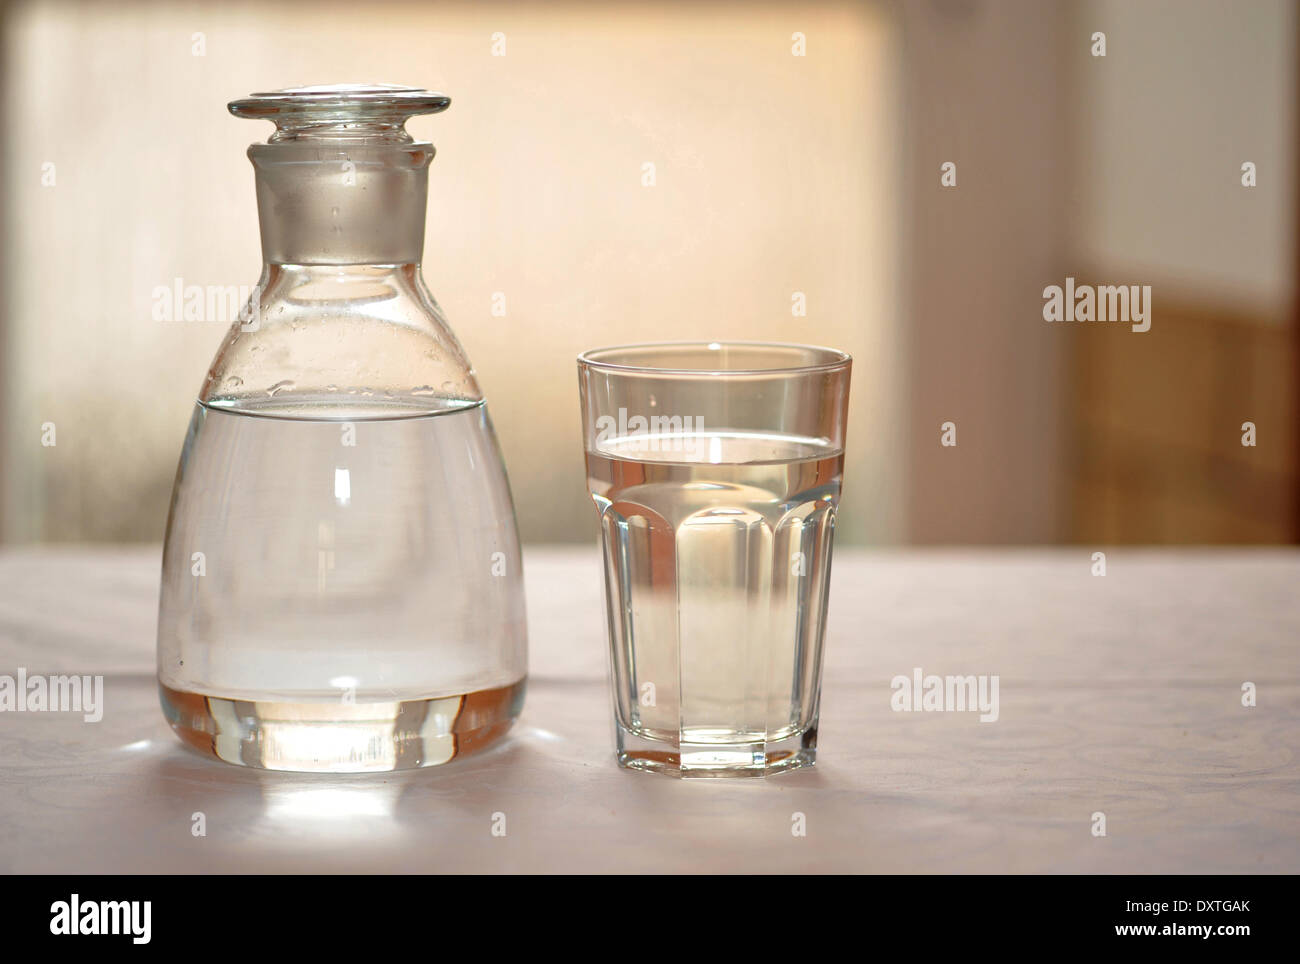 A Decorative Filled Glass Jar Next To A Filled Glass On A White